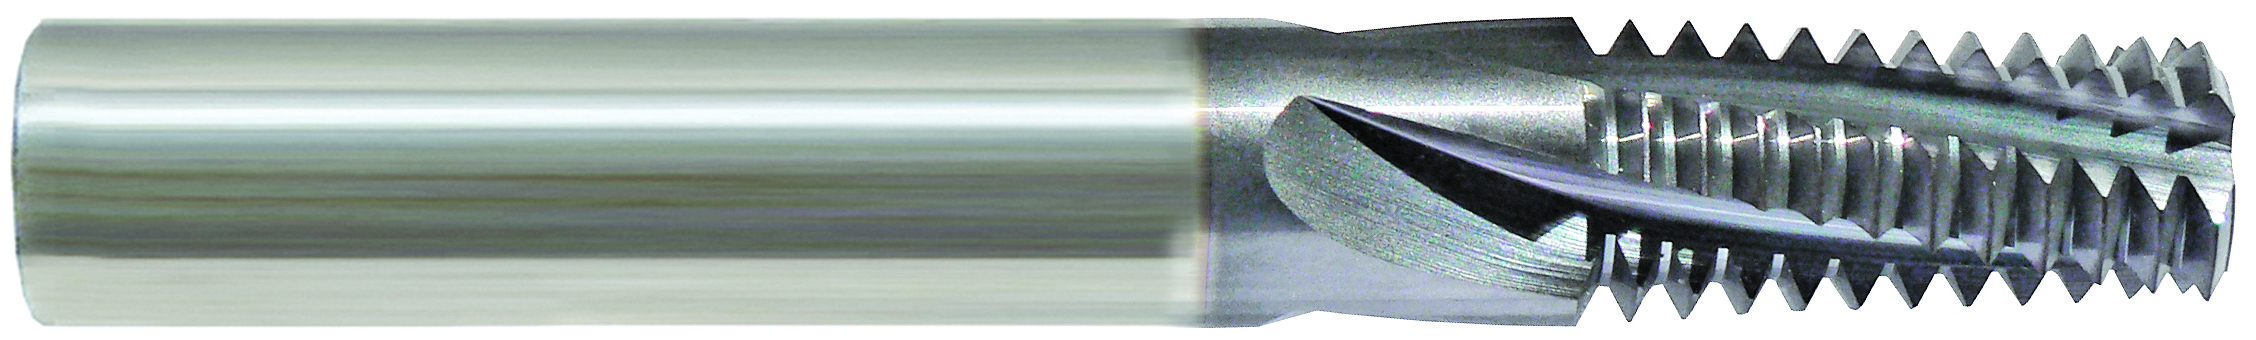 M20-2.50 MC SOLID CARBIDE THREAD MILL